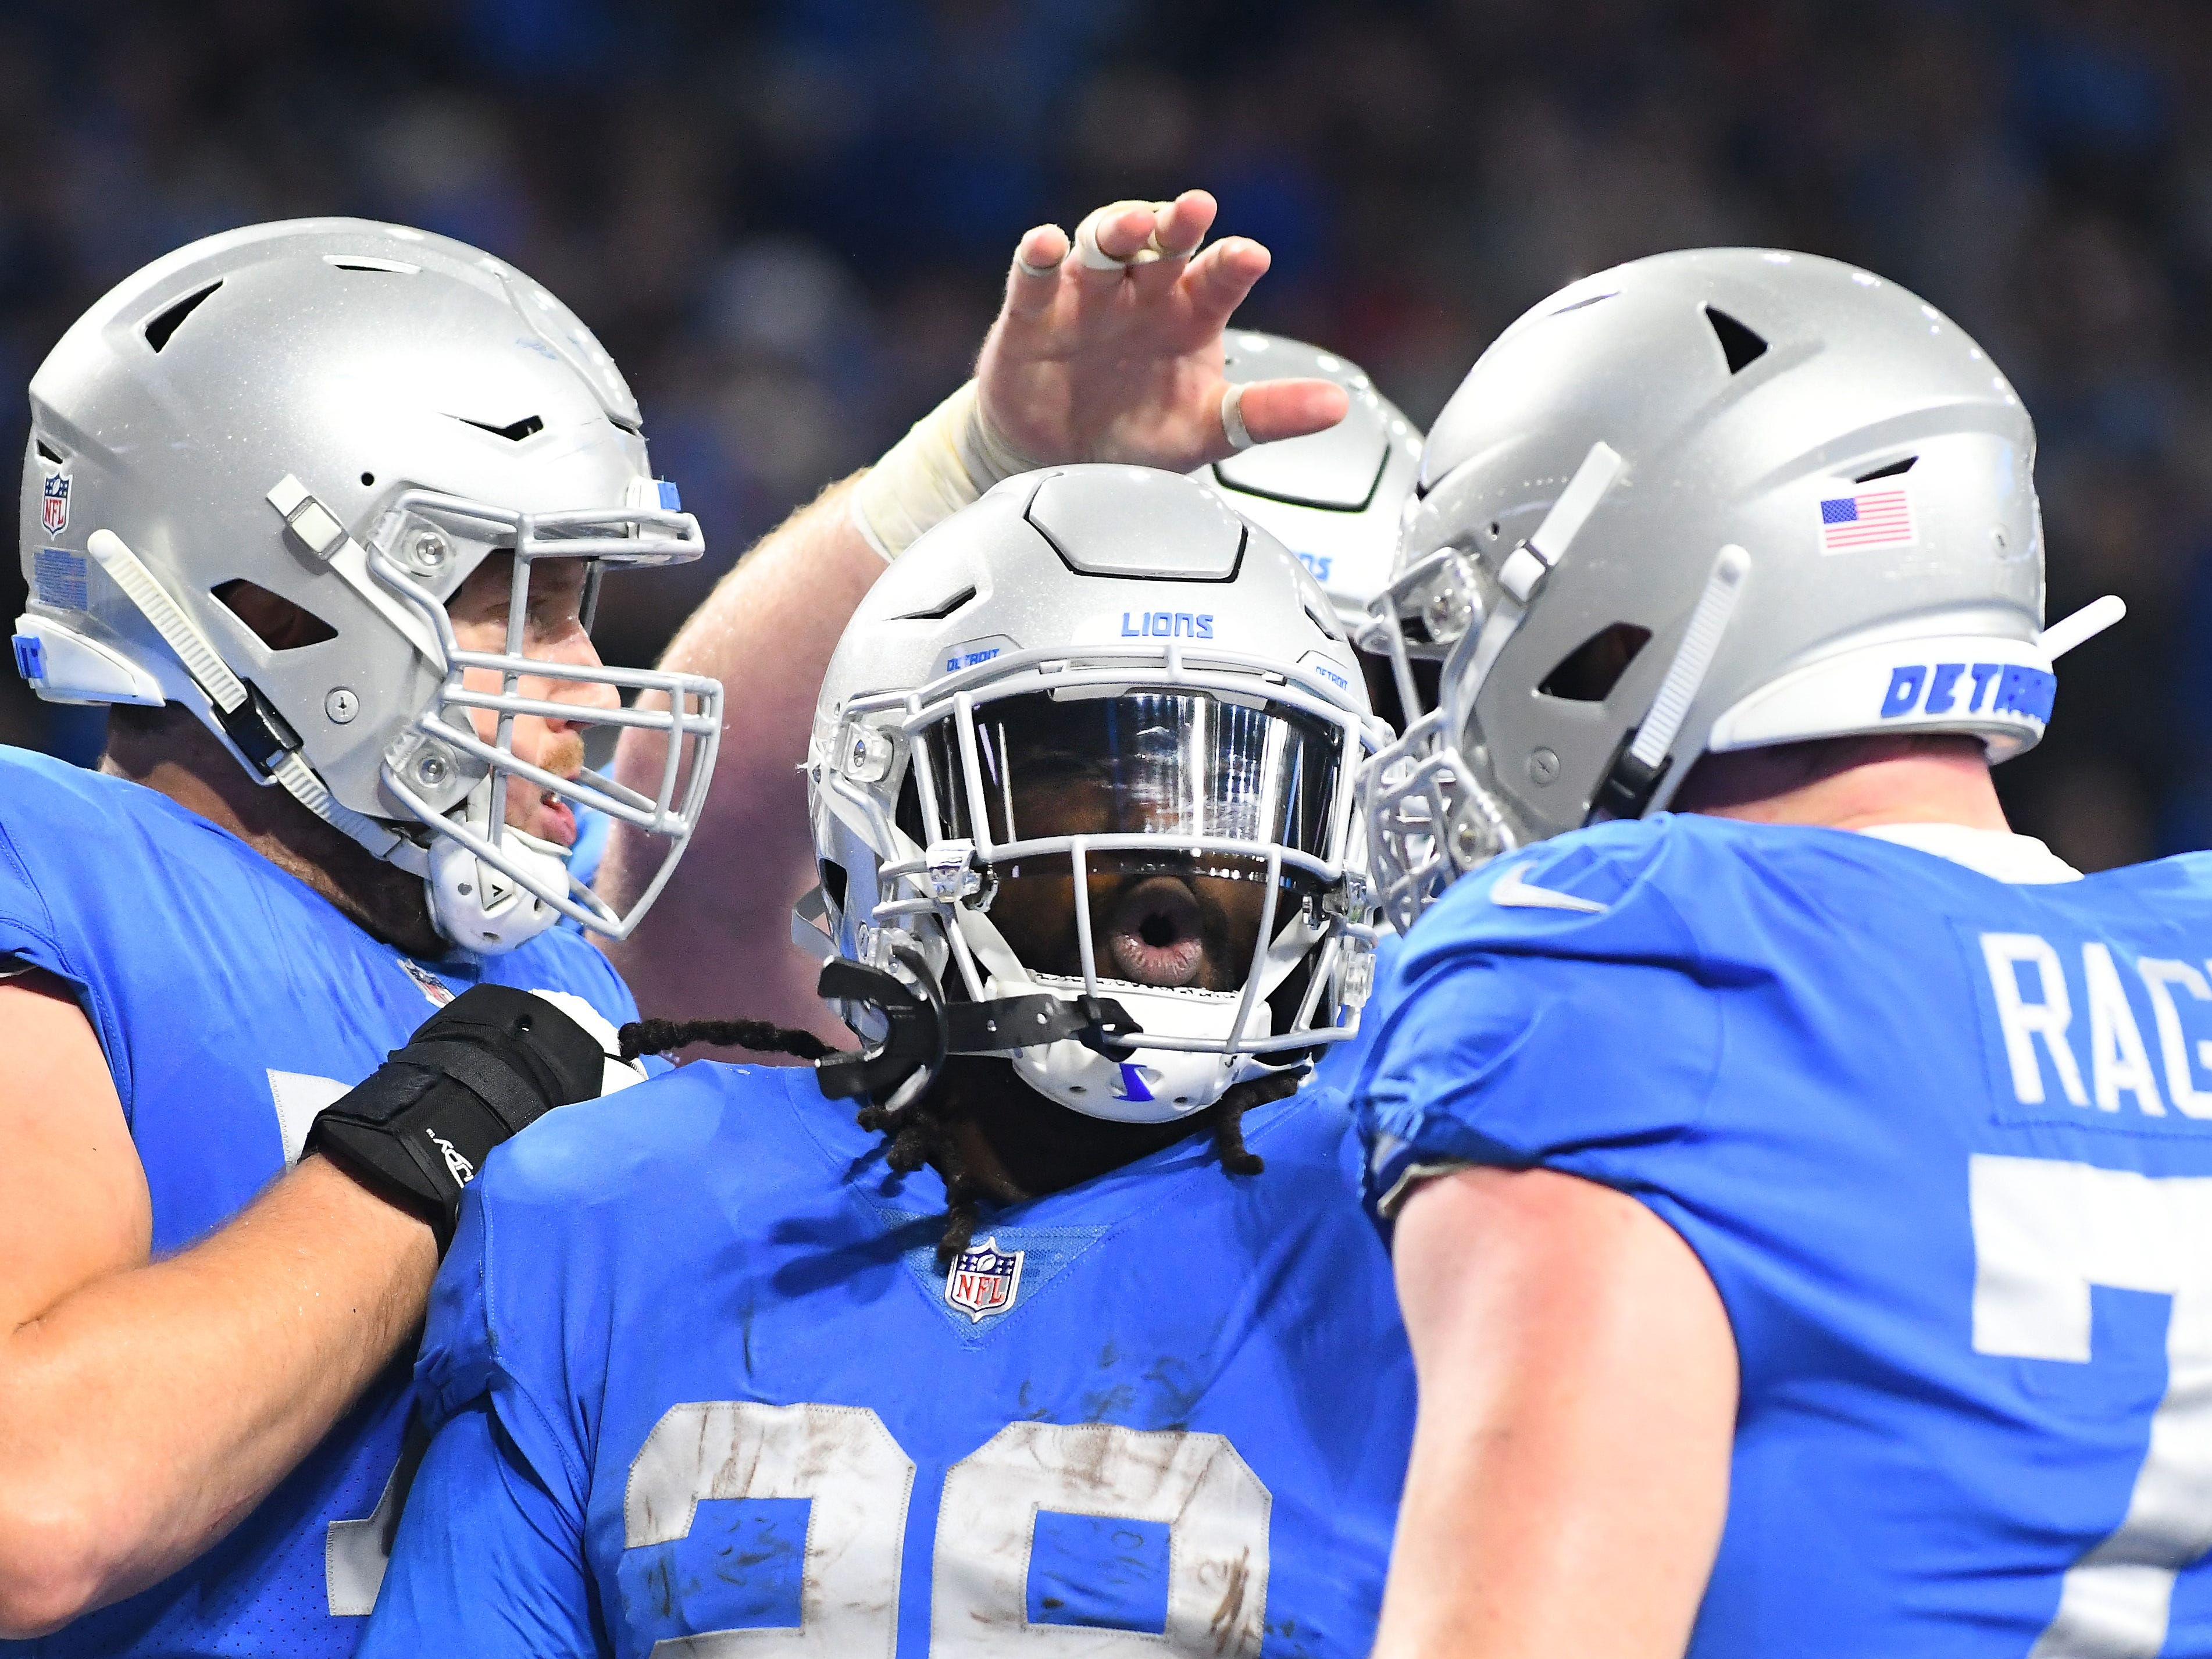 Lions running back LeGarrette Blount celebrates his touchdown run in the second quarter.